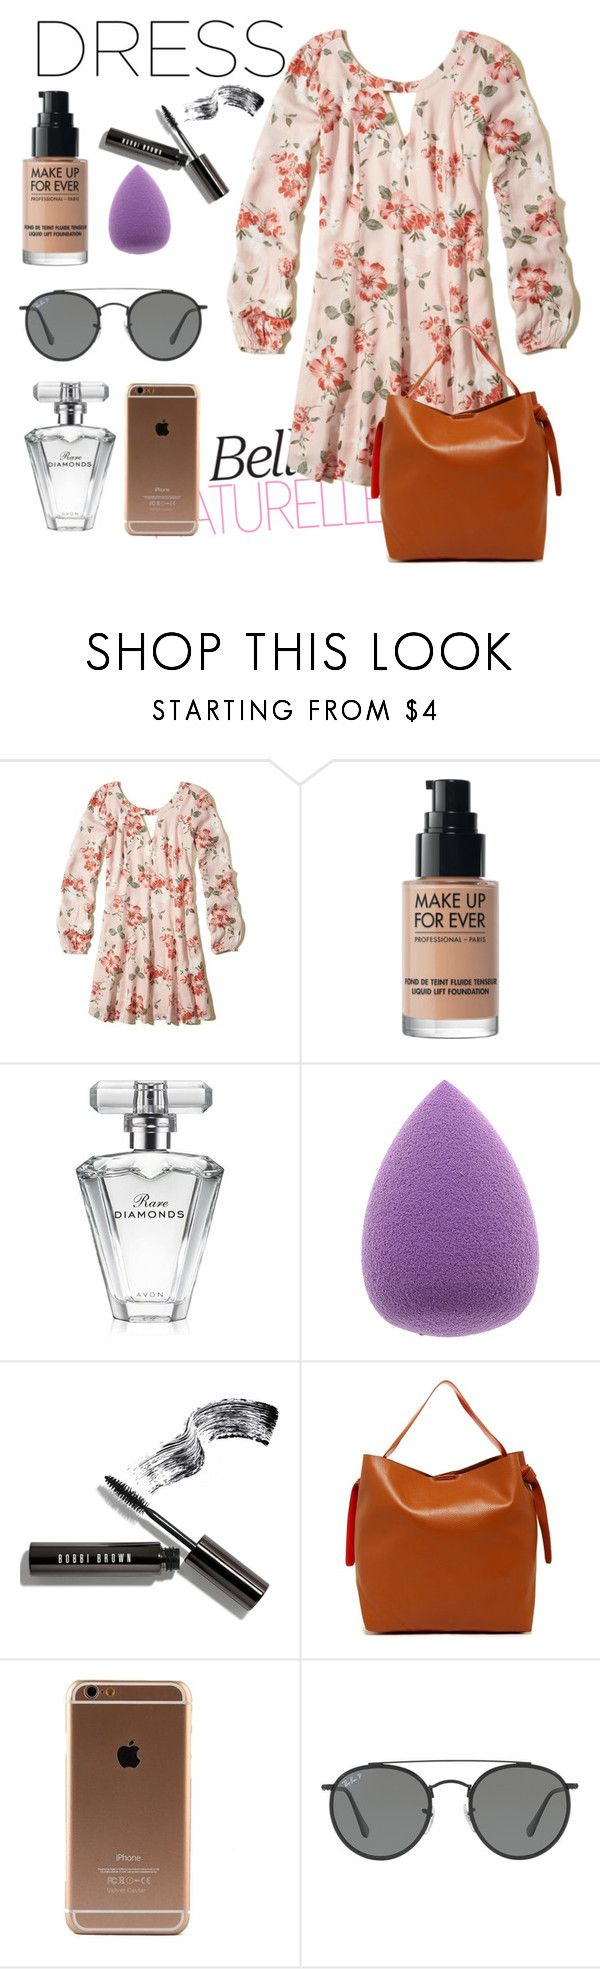 """""""PARK DATE"""" by rissarenee37 ❤ liked on Polyvore featuring Hollister Co., MAKE UP FOR EVER, Avon, Bobbi Brown Cosmetics, Shiraleah and Ray-Ban"""